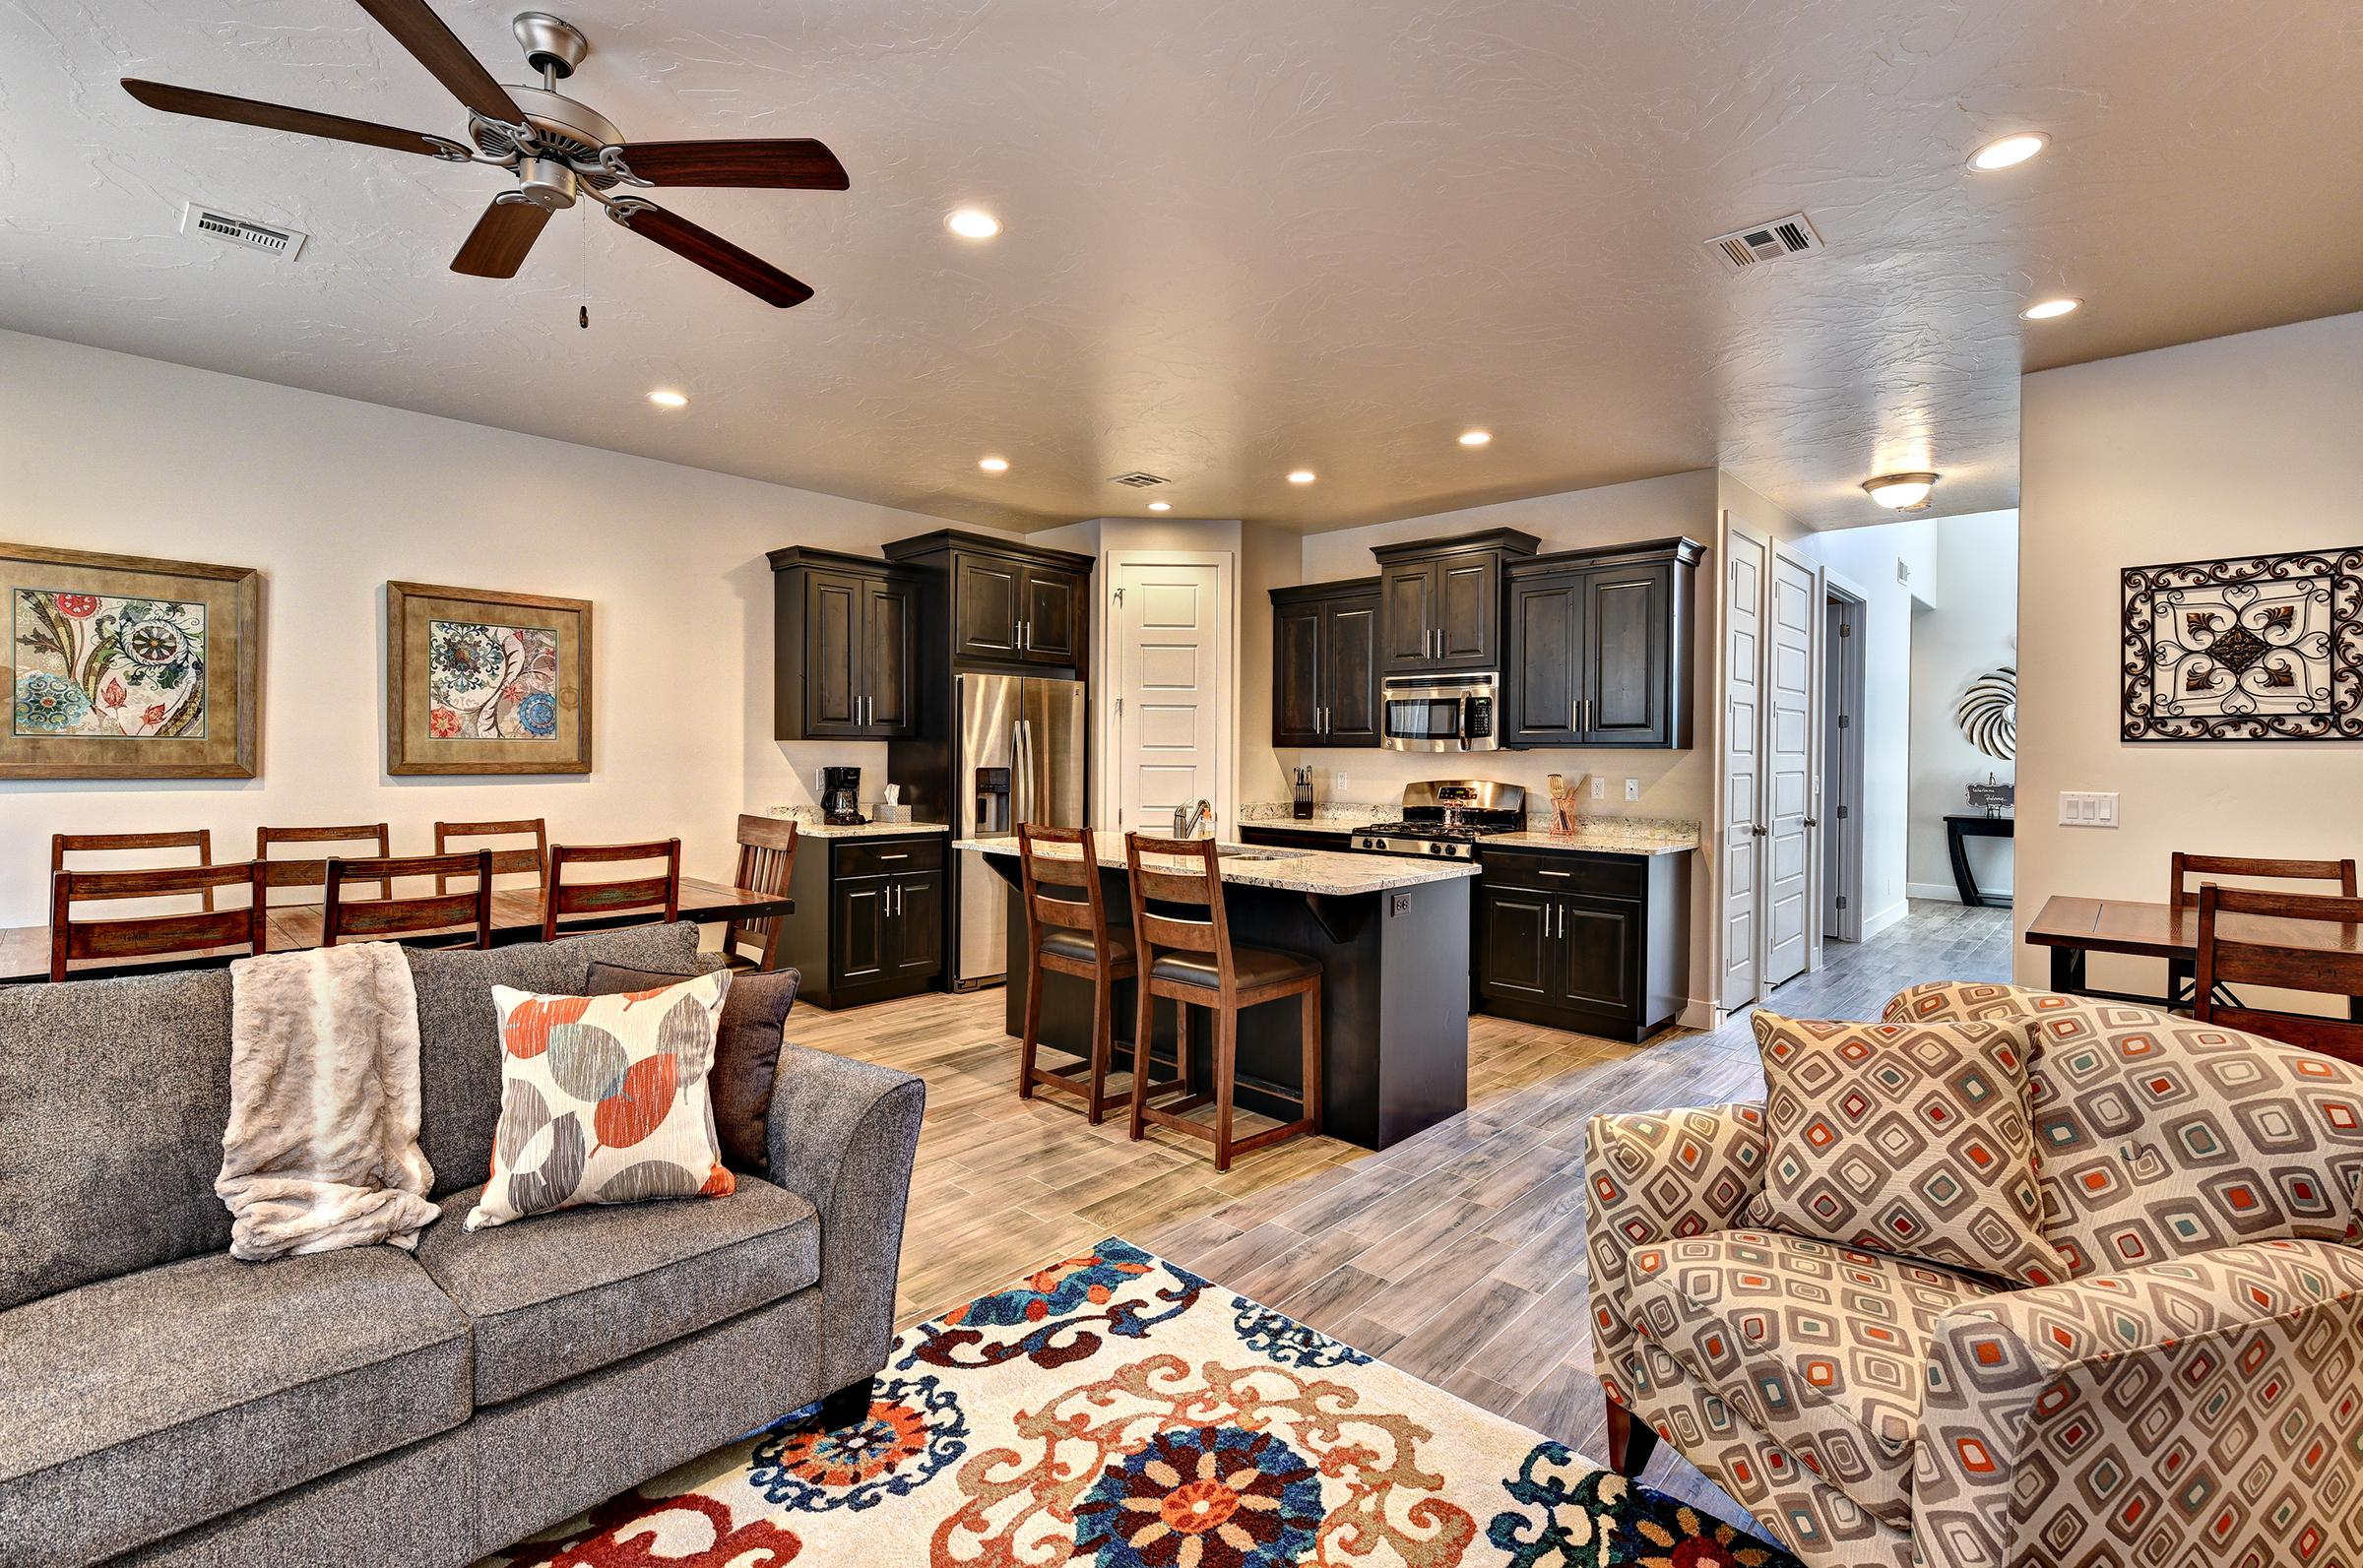 The Living Room is conveniently located adjacent to the Kitchen and Dining Table and is a great place for entertaining guests during downtime.